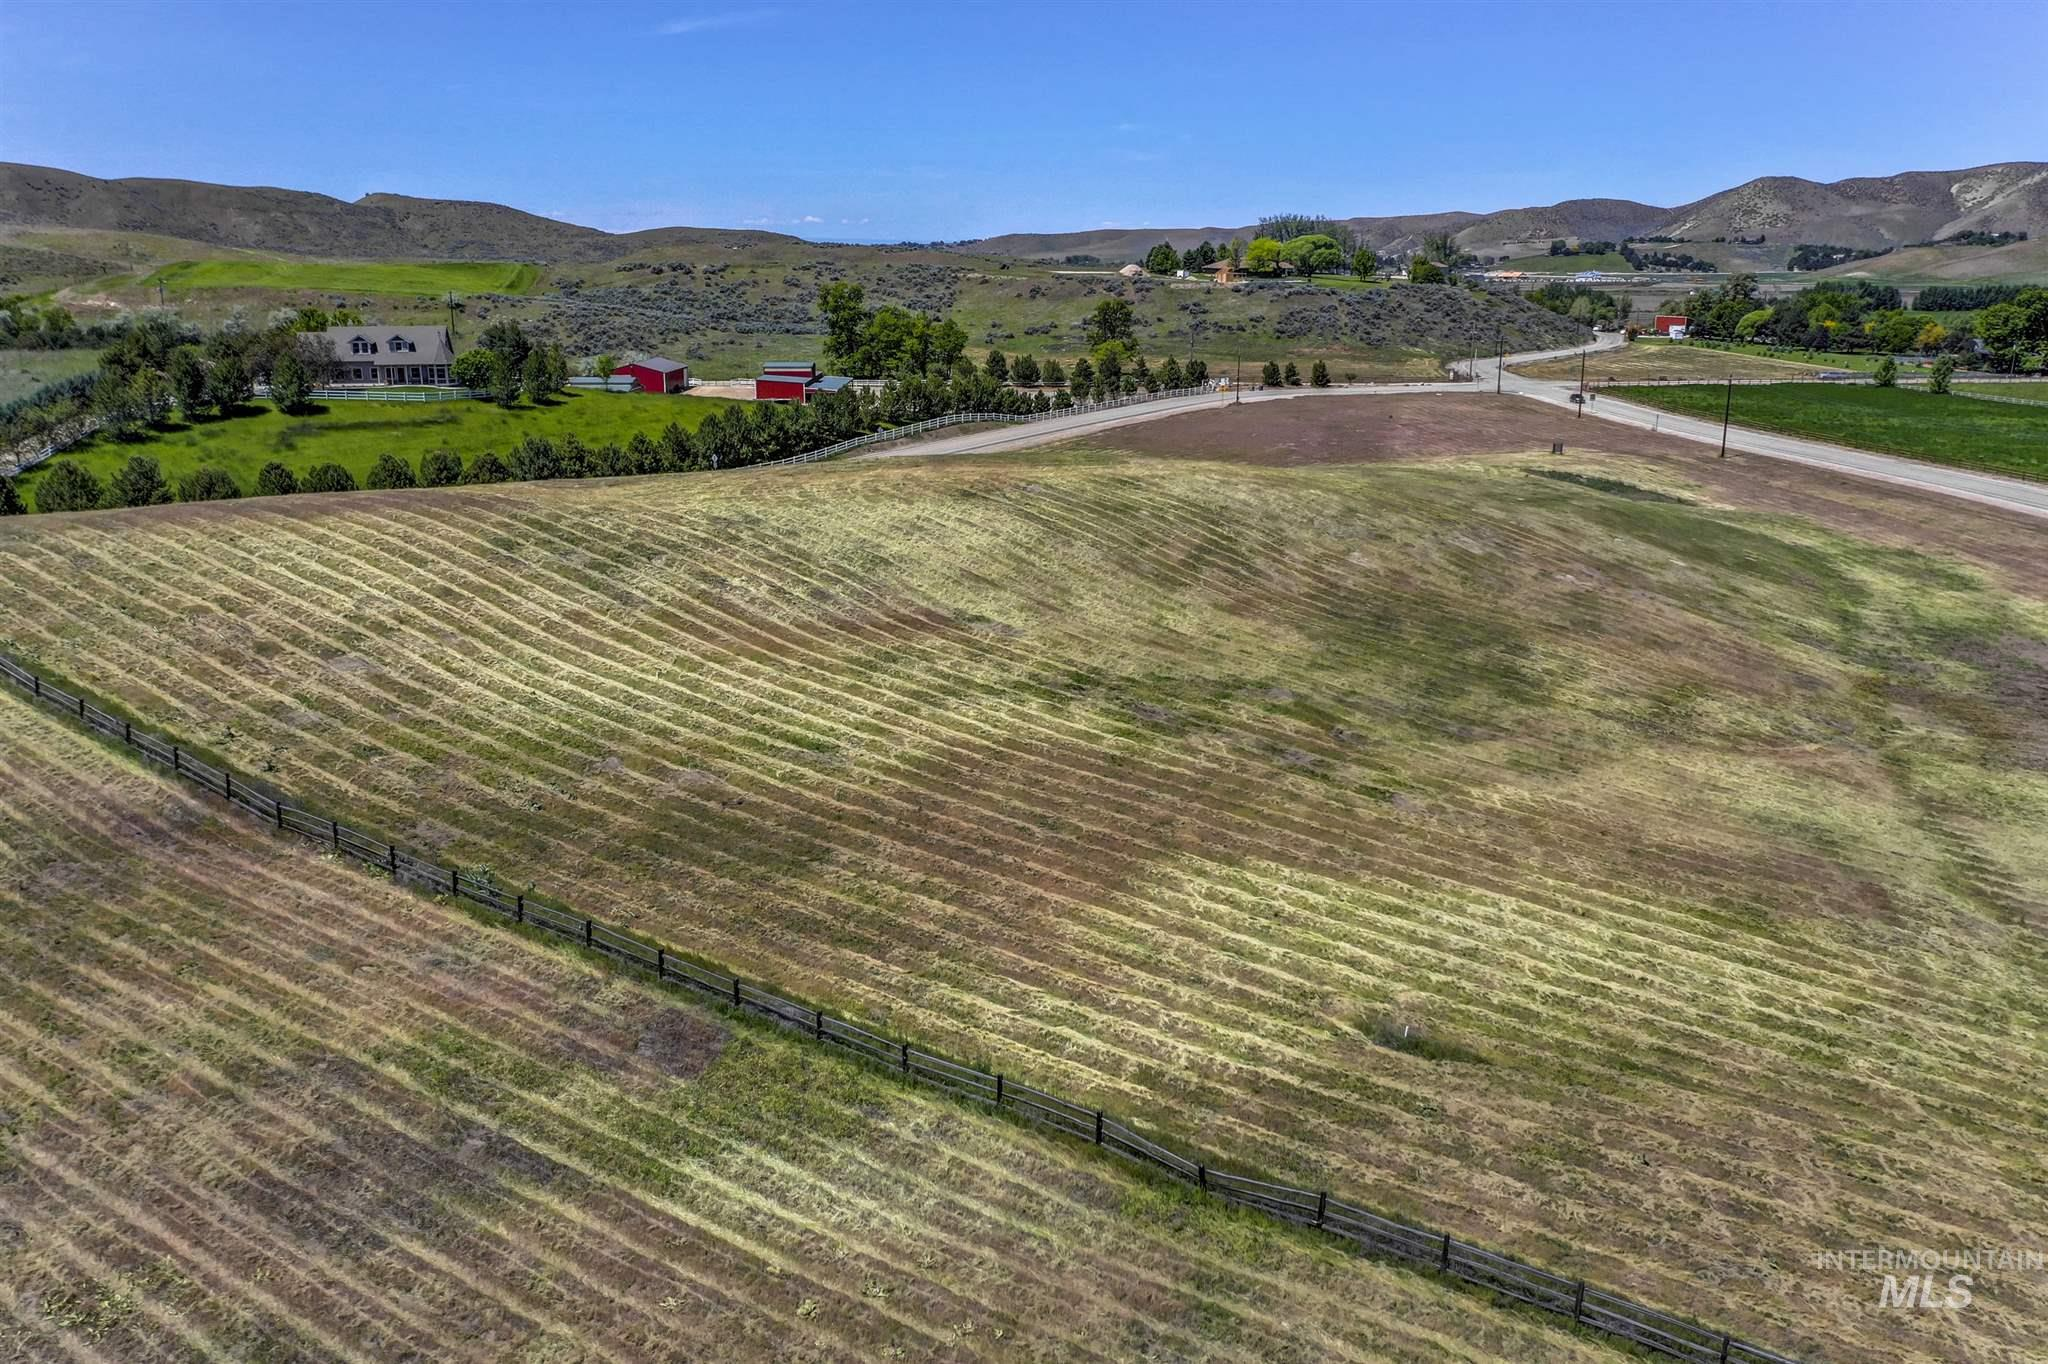 N Broken Horn Road, Boise, Idaho 83714, Land For Sale, Price $600,000, 98767150